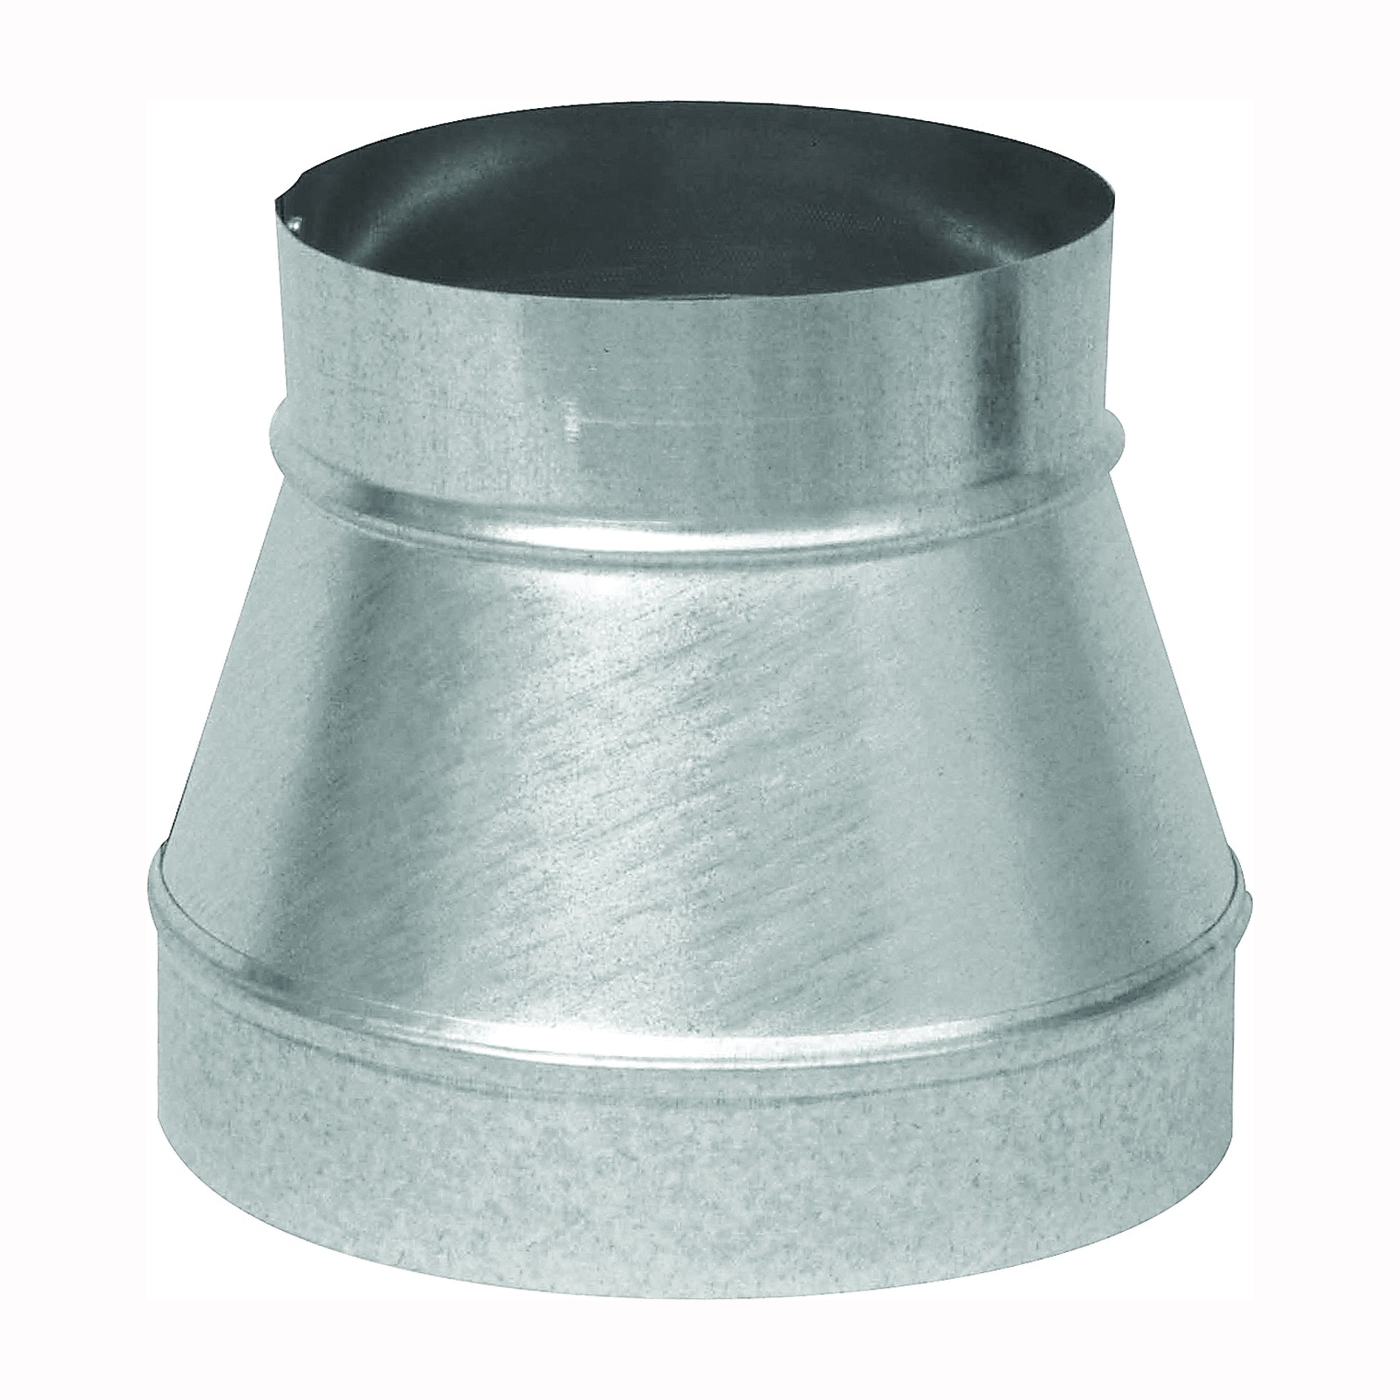 Picture of Imperial GV1200 Stove Pipe Reducer, 6 x 5 in, 26 ga Thick Wall, Black, Galvanized